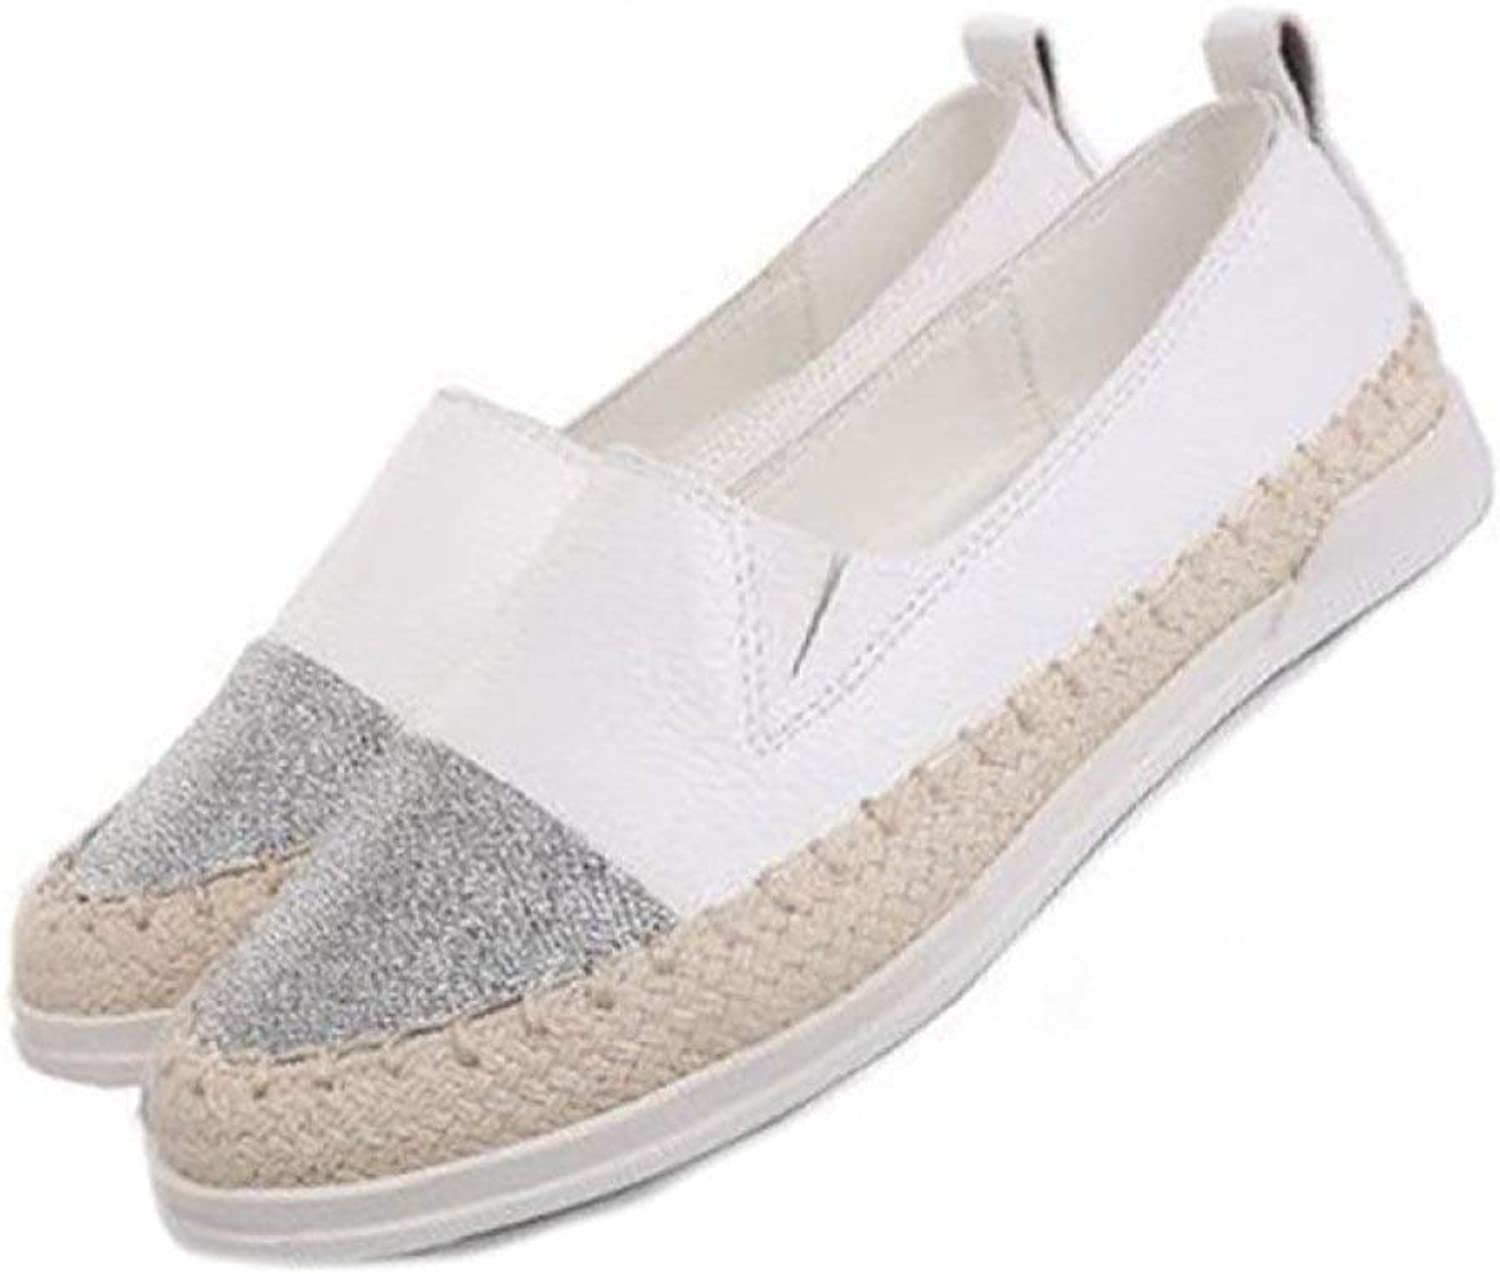 DETAIWIN Women Flats Casual Loafers Comfort Patchwork Slip On Anti-Skid Shallow Girls Round Toe Espadrilles shoes